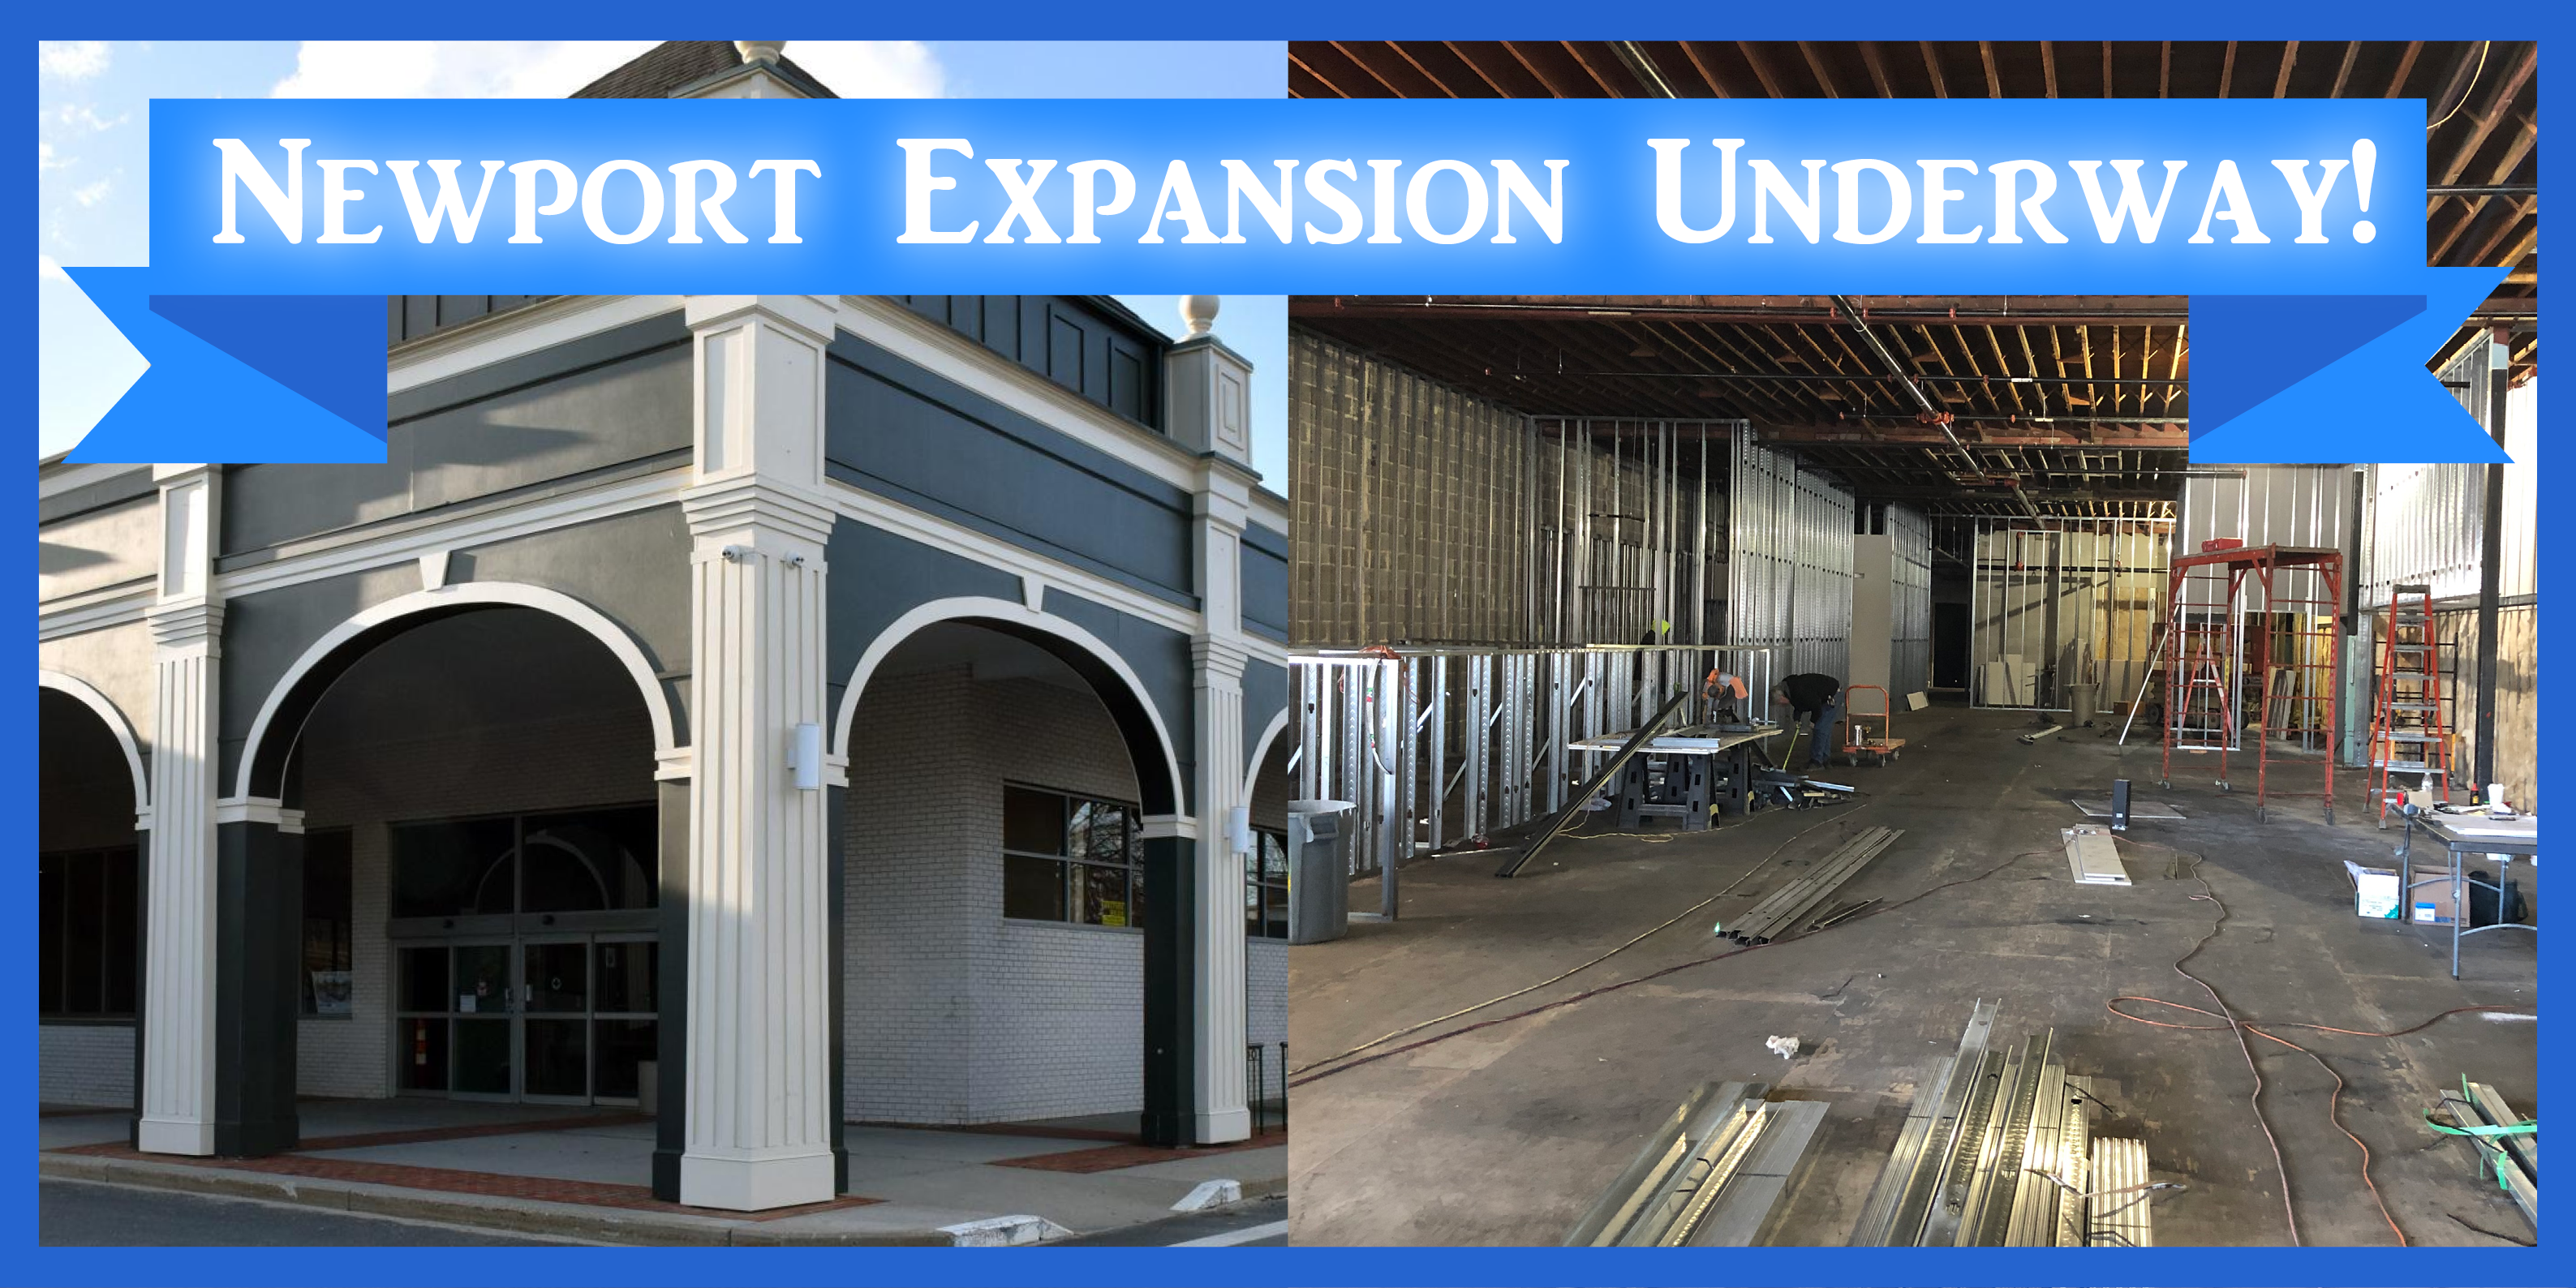 Newport Expansion Underway!